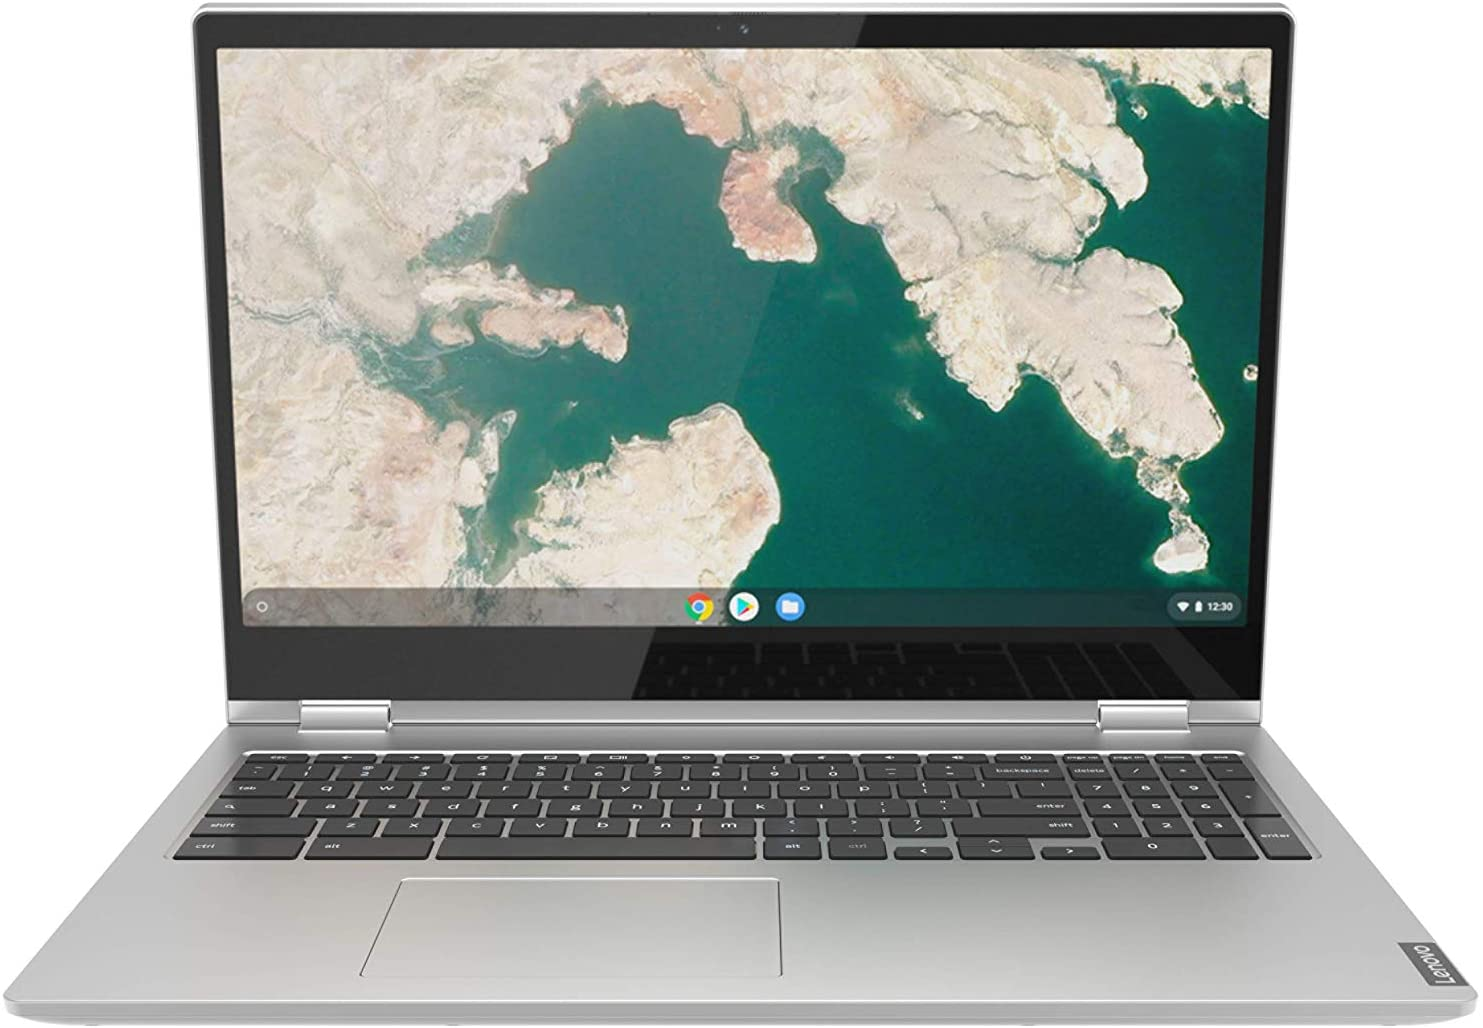 "Lenovo Chromebook C340 Laptop, 15.6"" FHD (1920 X 1080) Display, Intel Core i3-8130U Processor, 4GB DDR4 RAM, 64GB SSD, Intel UHD Graphics 620, Chrome OS, 2 In 1 Touchscreen, 81T90002UX, Mineral Grey"